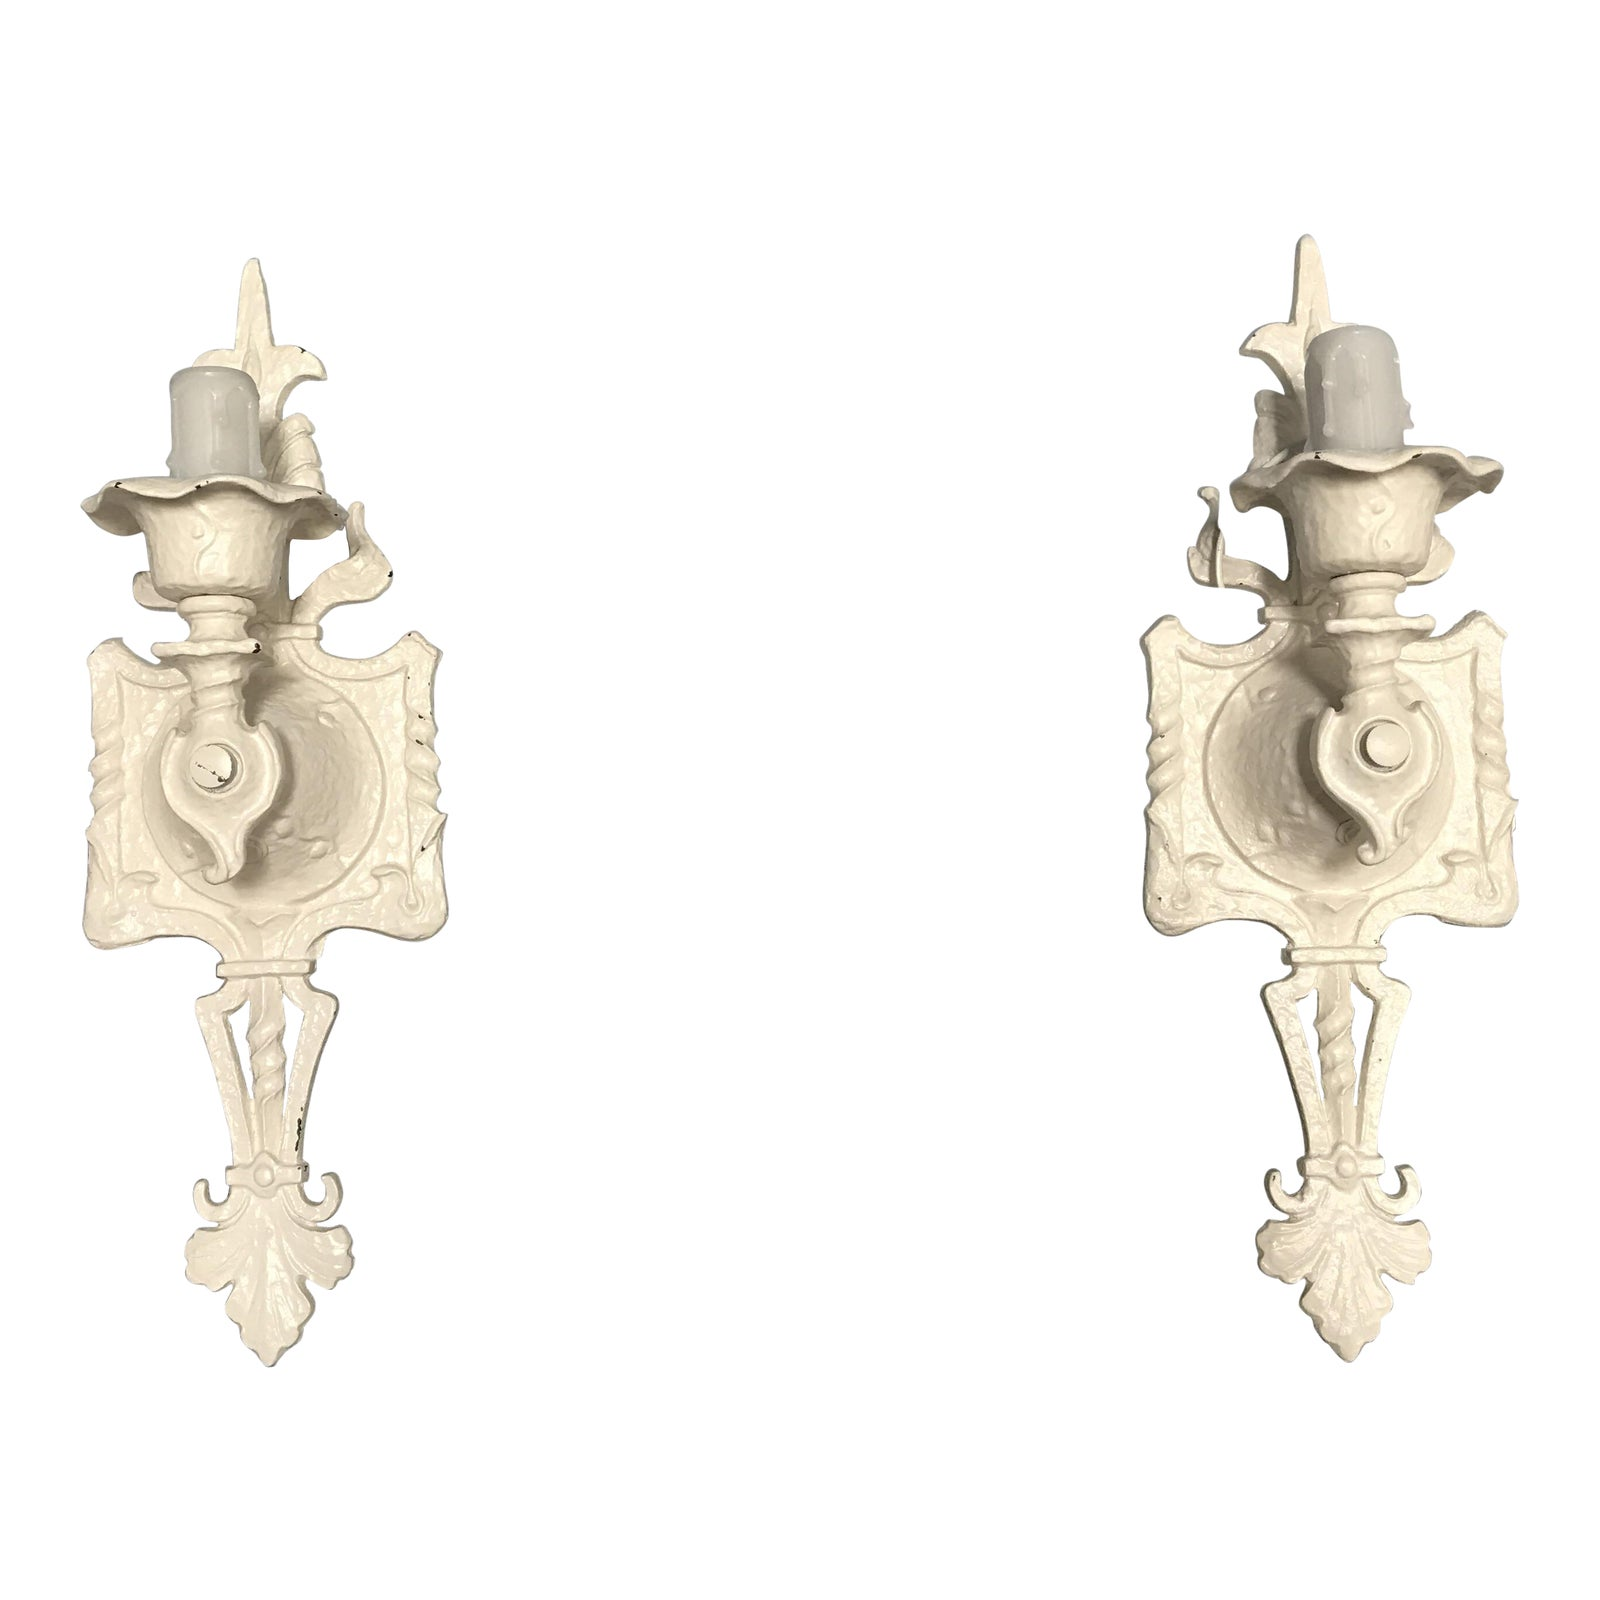 Creamy White Art Deco Iron Sconces With Faux Wax Candle